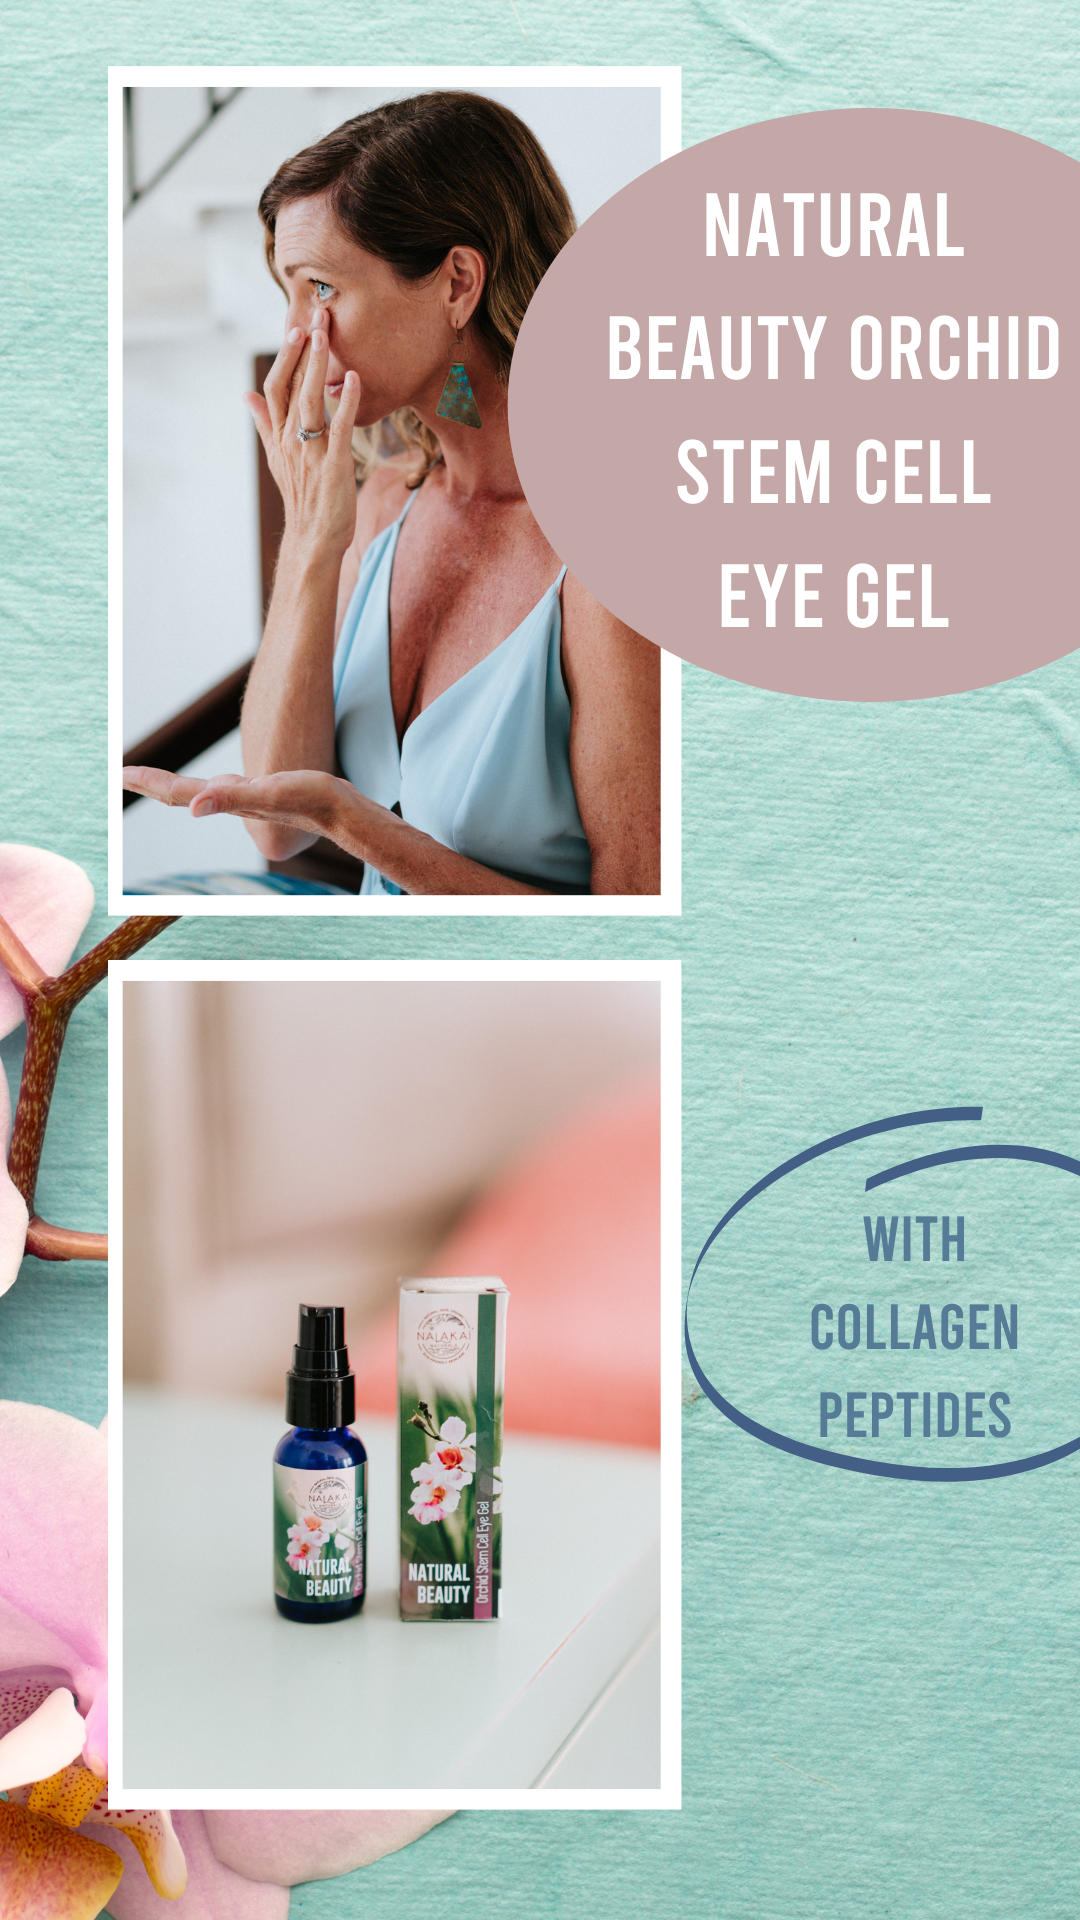 INFUSED WITH COLLAGEN PEPTIDES AND HYALURONIC ACID THAT WILL TIGHTEN AND FIRM : We added so much collagen to our eye gel that you can feel it working to tighten and firm your skin when you apply it. You will feel a warming and tingling sensation! Our eye firming gel will give you tired eyes a new lease of life. #eyegel #stemcell #natural #organicskincare #skincare #undereyegel #nalakai #nalakainaturals